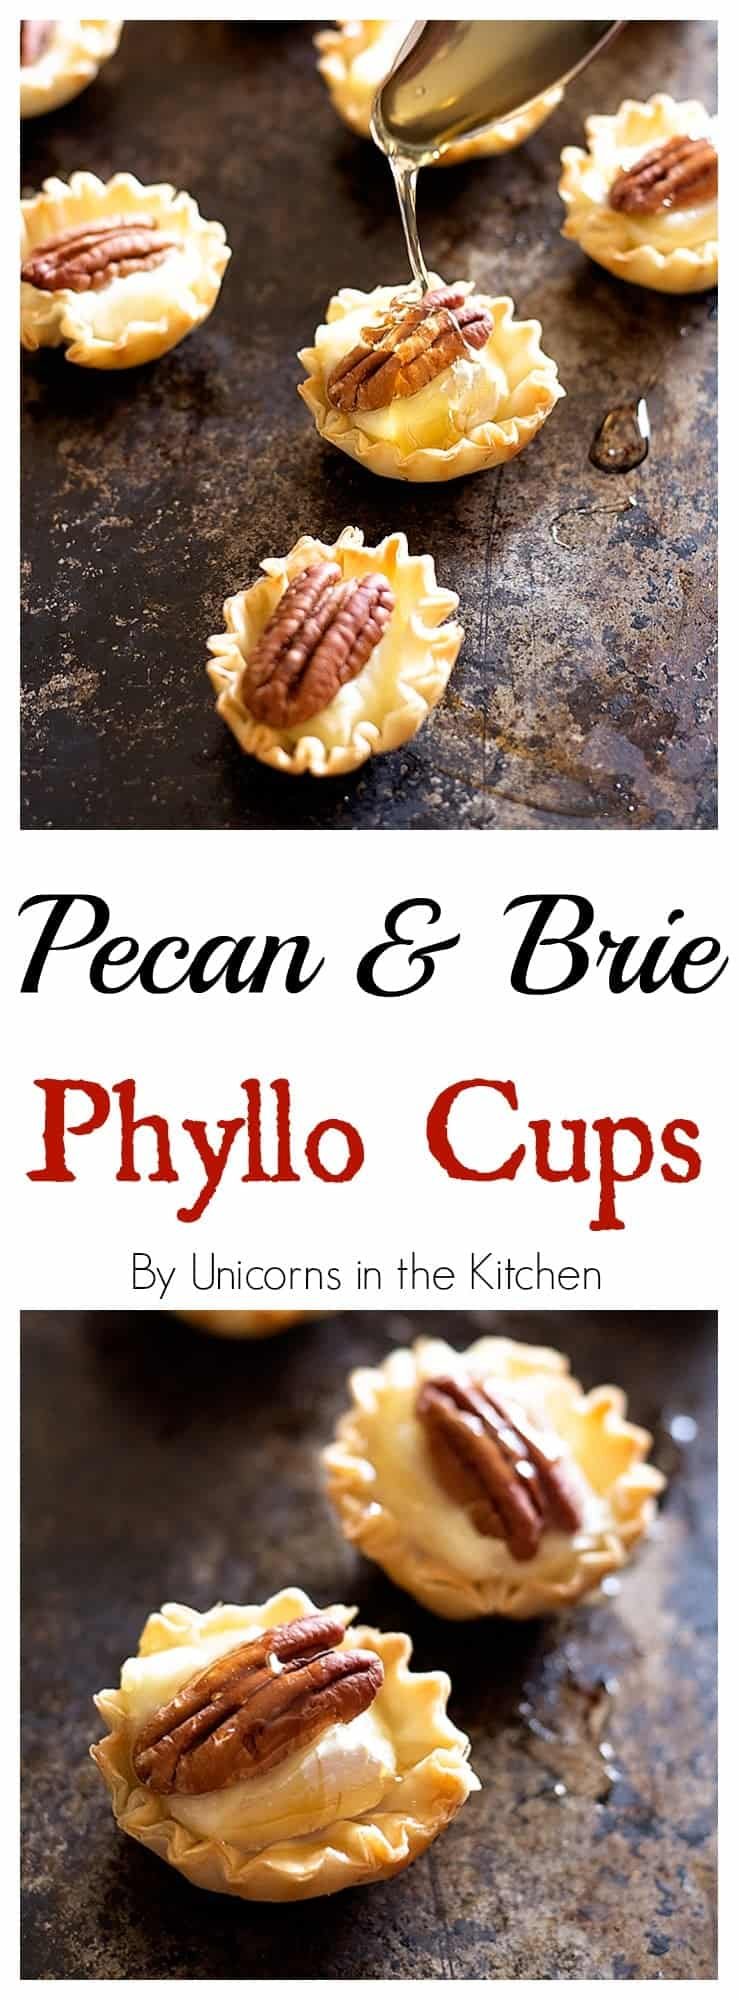 Rock your table with these easy Pecan and Brie Phyllo cups and drizzle some honey on top to boost the flavor! All in 15 minutes and very little effort!